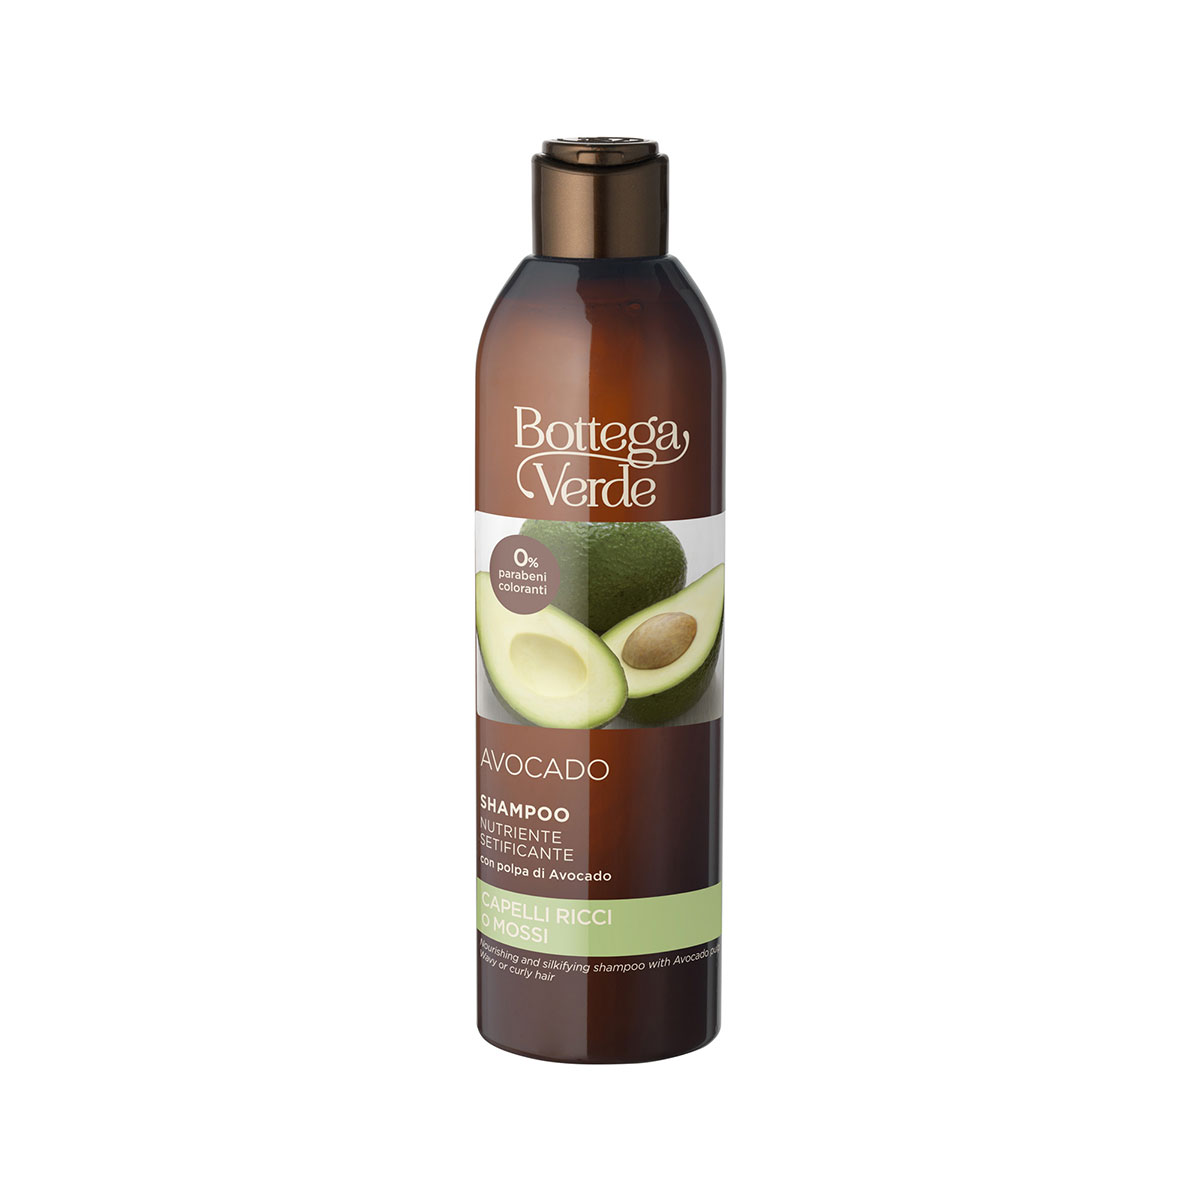 Avocado - Shampoo nutriente setificante - con polpa di Avocado (250 ml) - capelli ricci o mossi